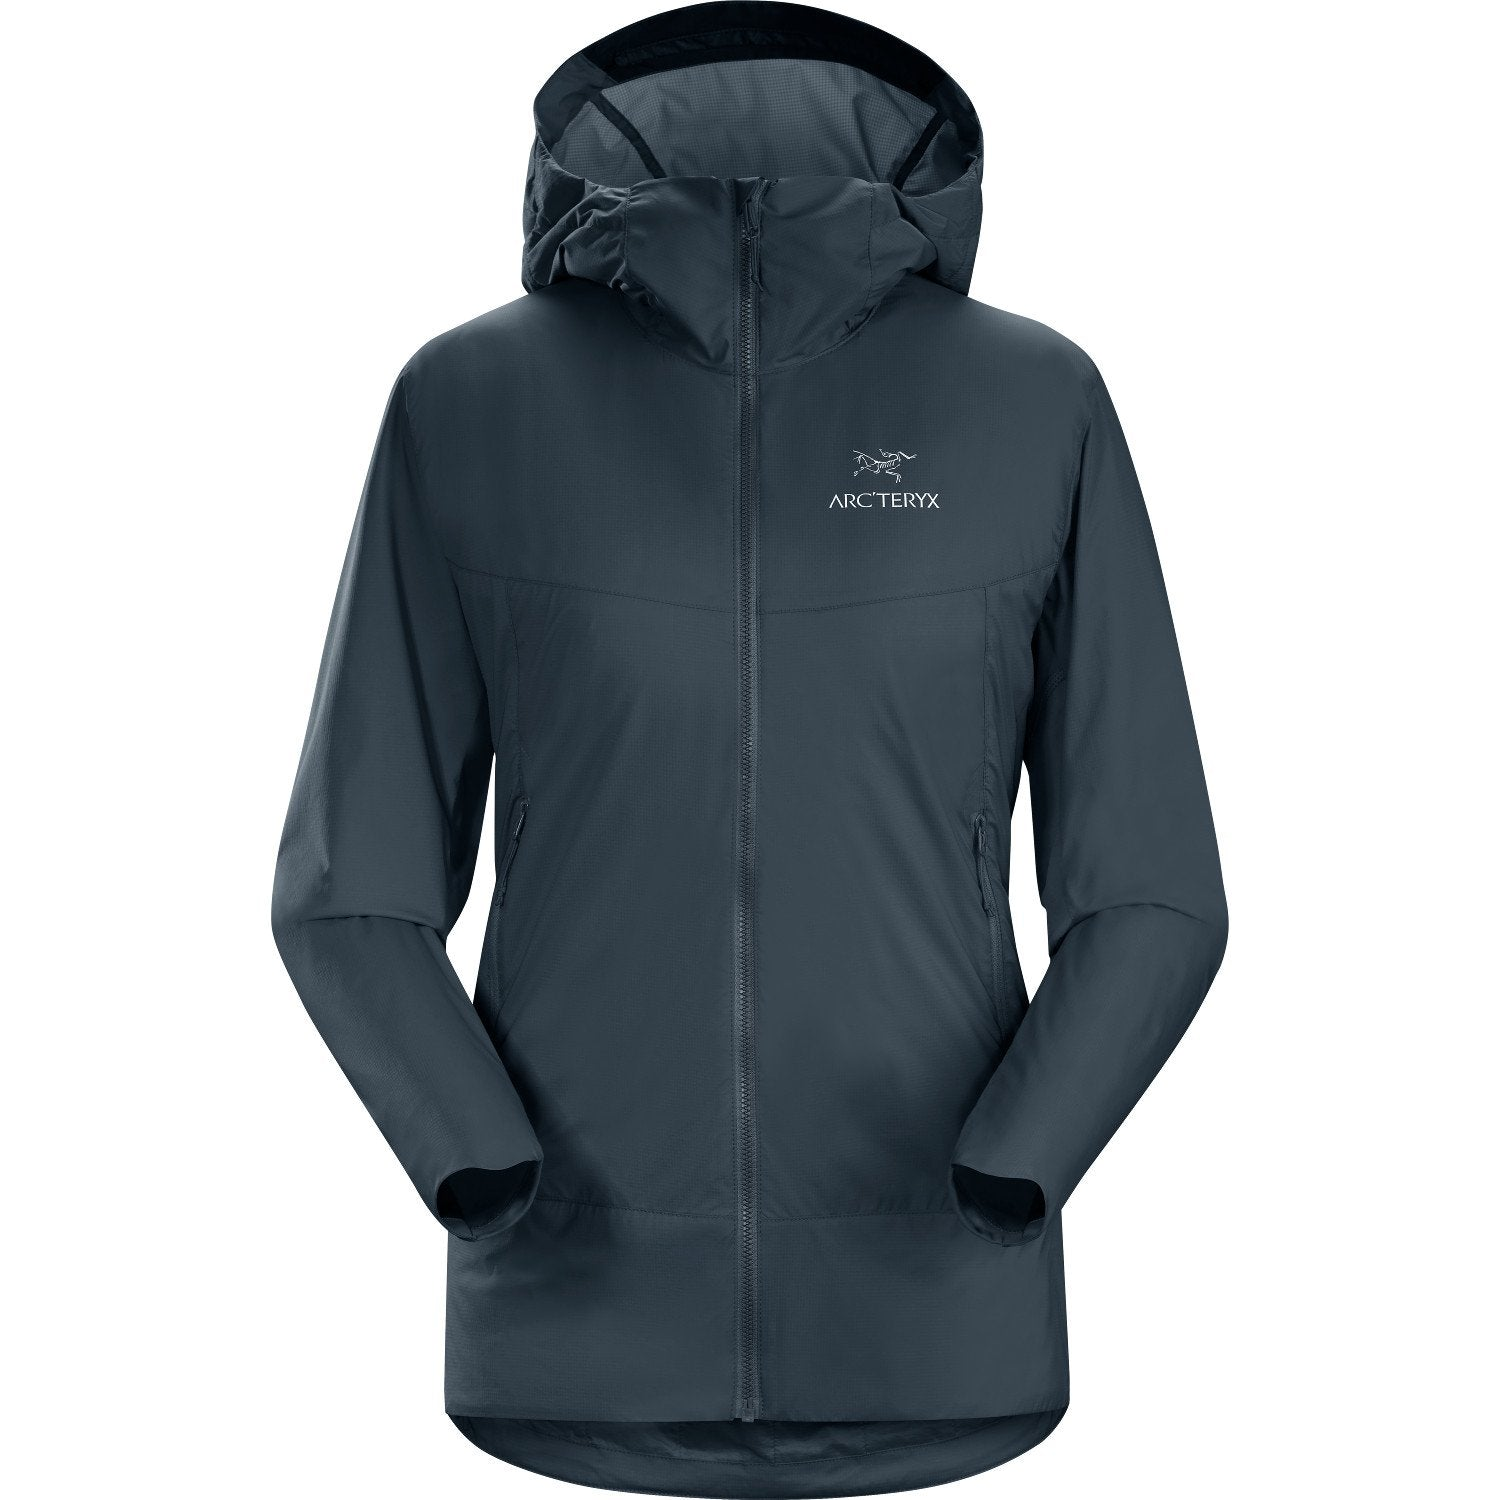 ArcTeryx Atom SL Women's Hoody in Black